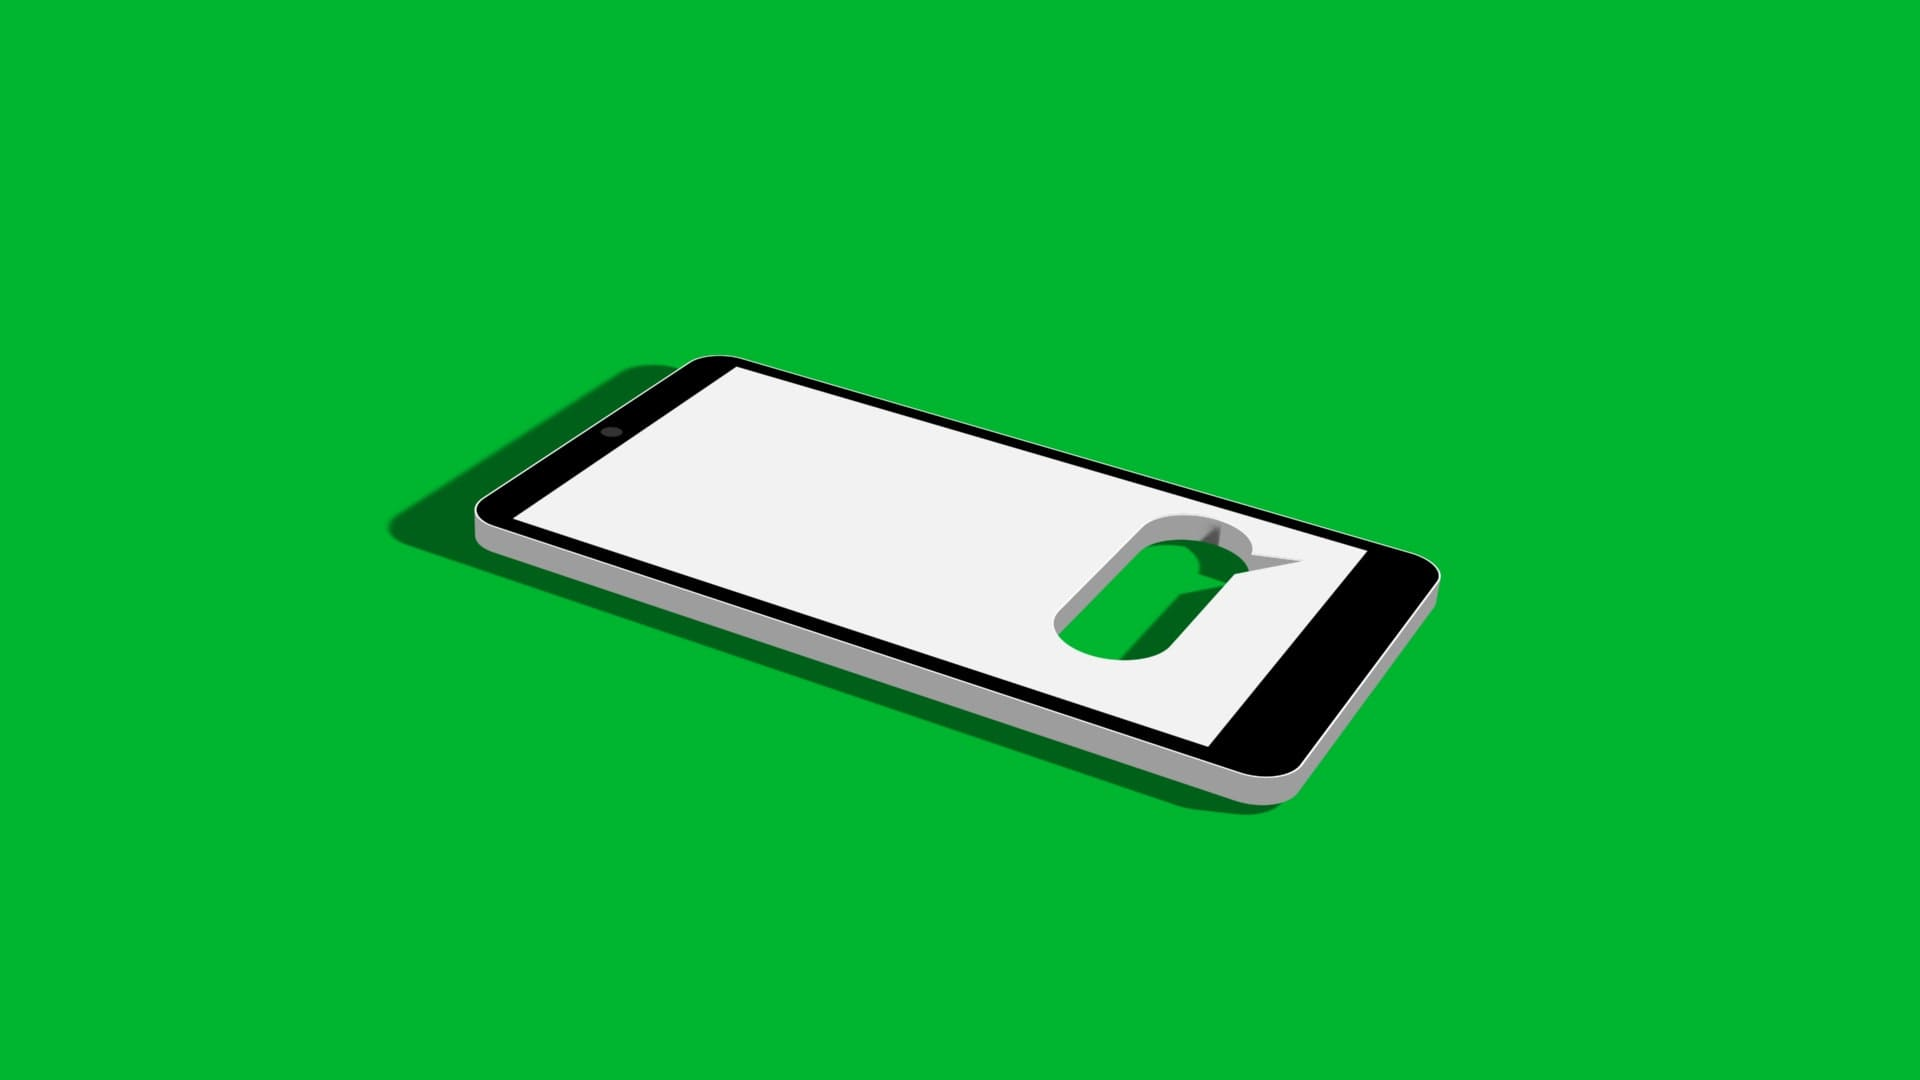 how to send auto delete messages in whatsapp